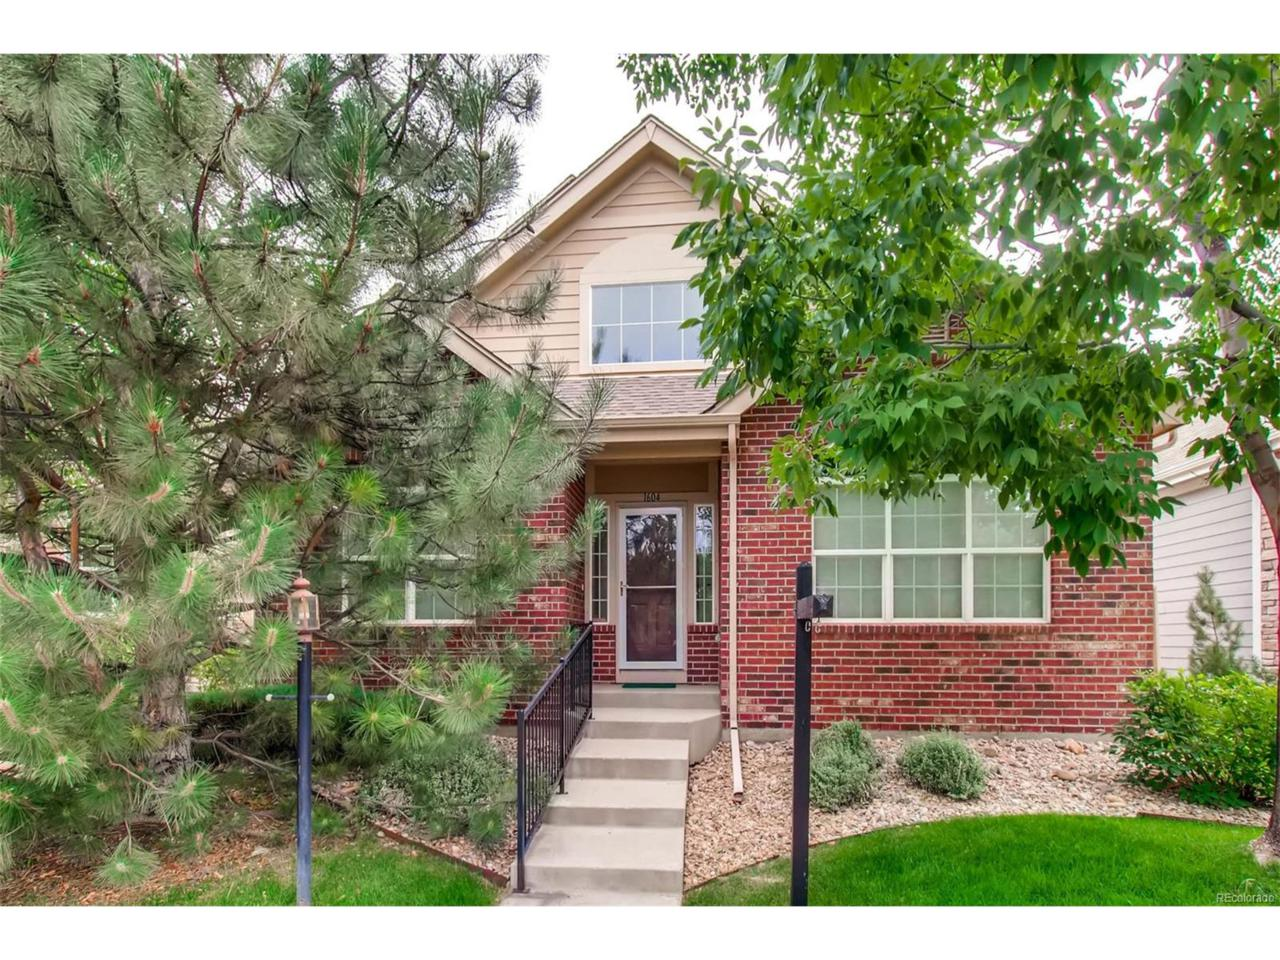 1604 Whitehall Drive, Longmont, CO 80504 (MLS #8208831) :: 8z Real Estate